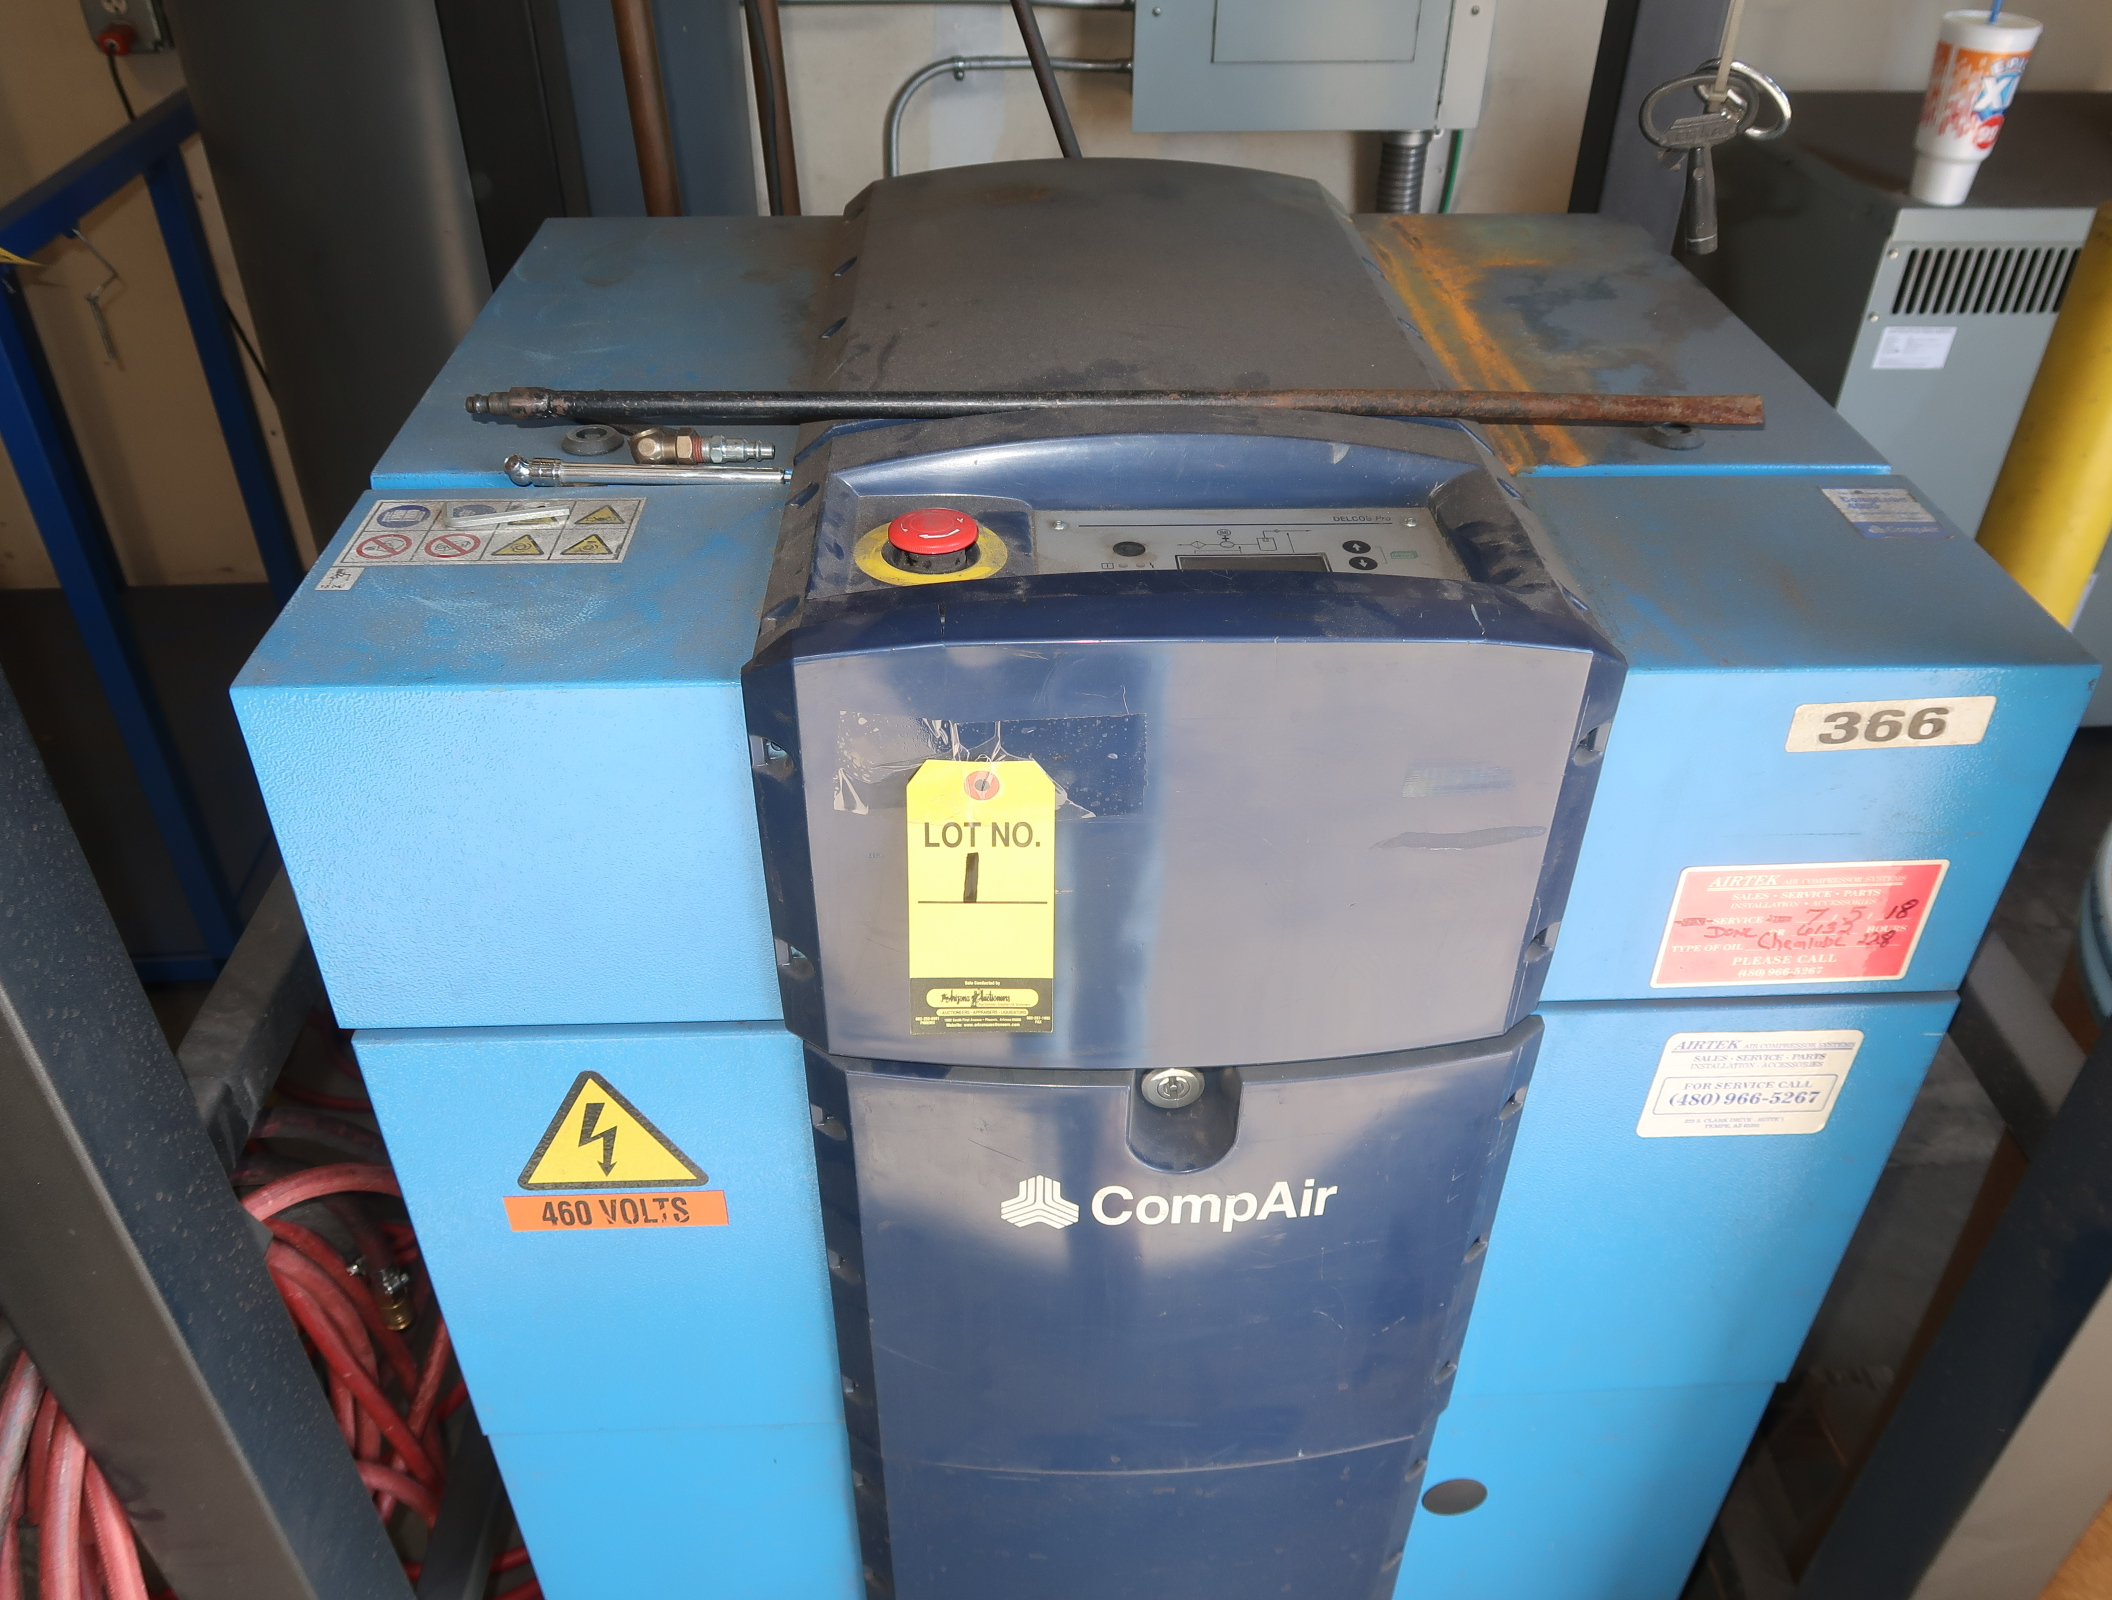 2014 COMP AIR 20HP ROTARY SCREW AIRCOMPRESSOR MDL. LFRZA, 3PH W/ VERTIAL AIR RECEIVER, SN. D125008 - Image 2 of 7